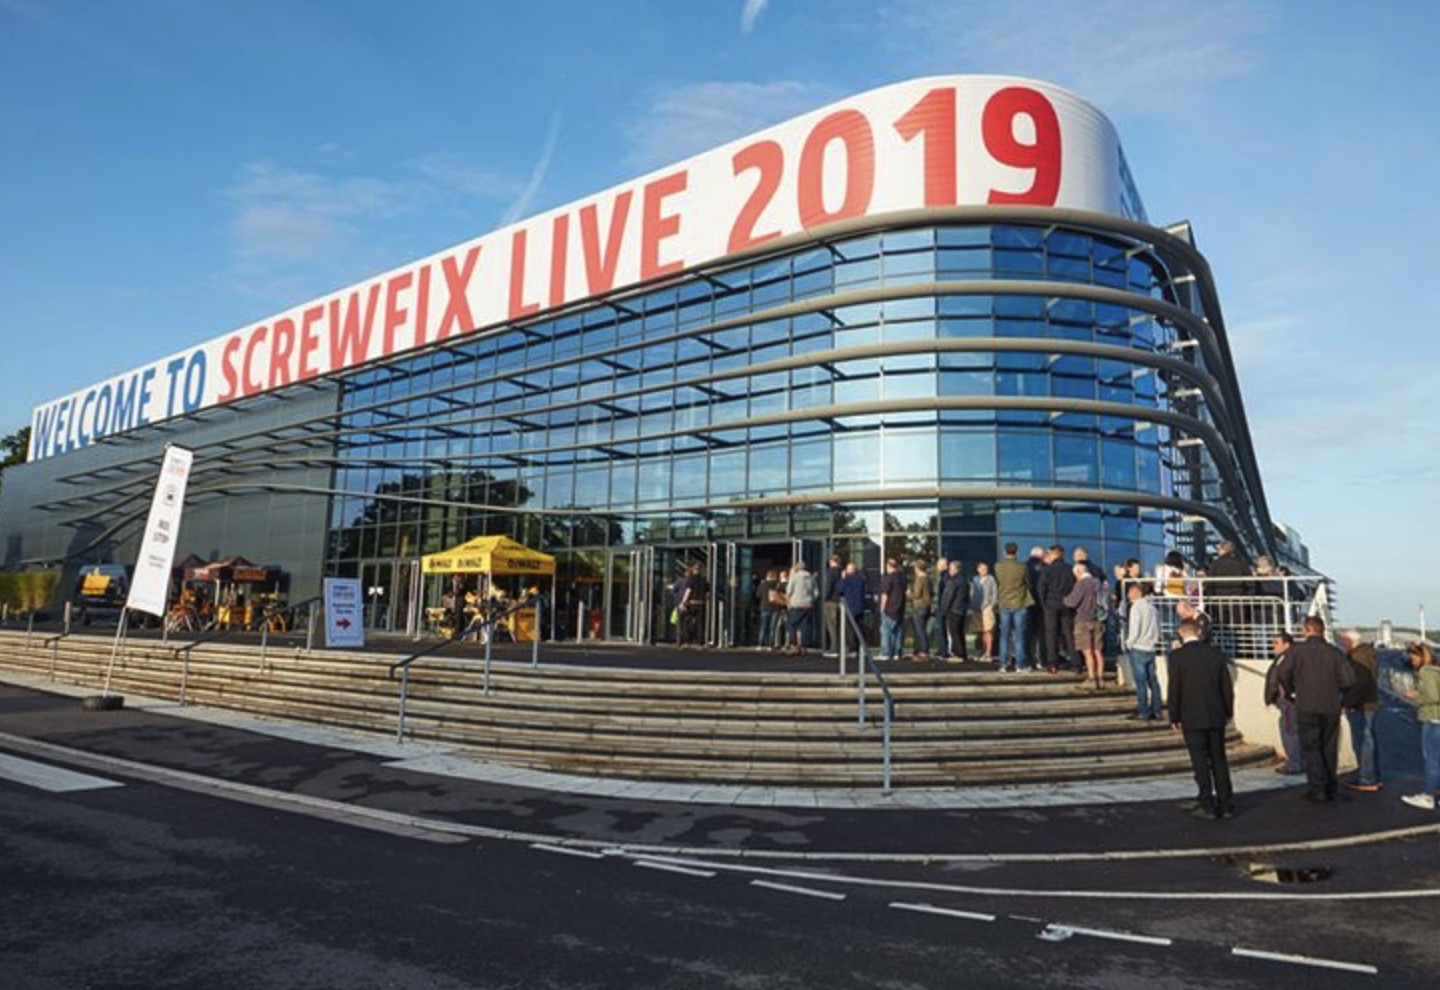 Screwfix Live breaks attendance records